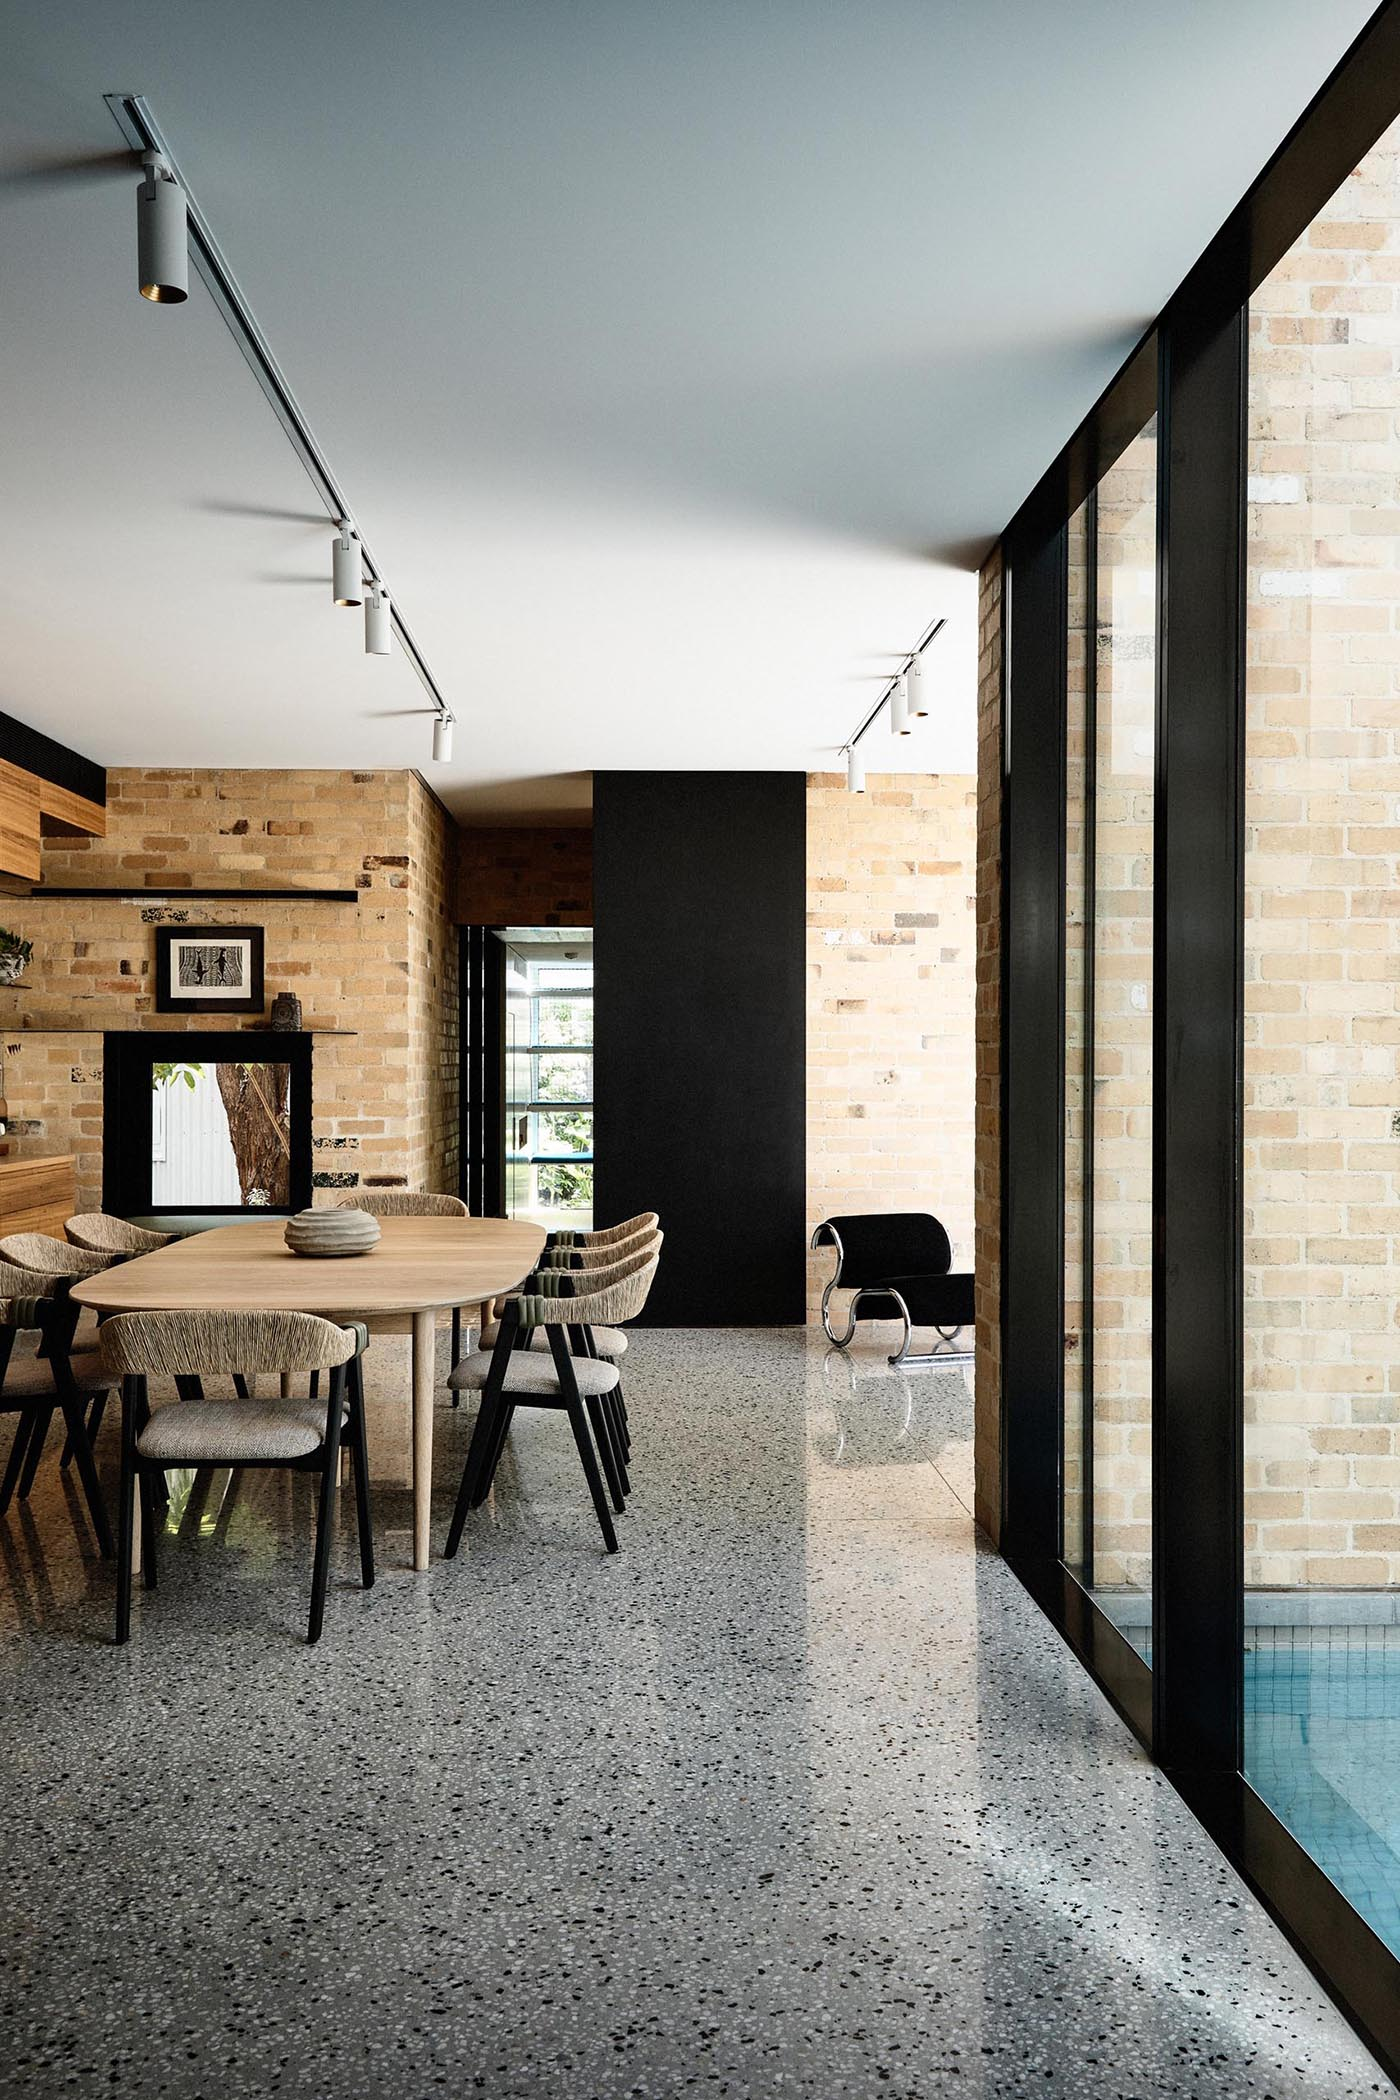 A modern dining room with brick walls and a wood table.